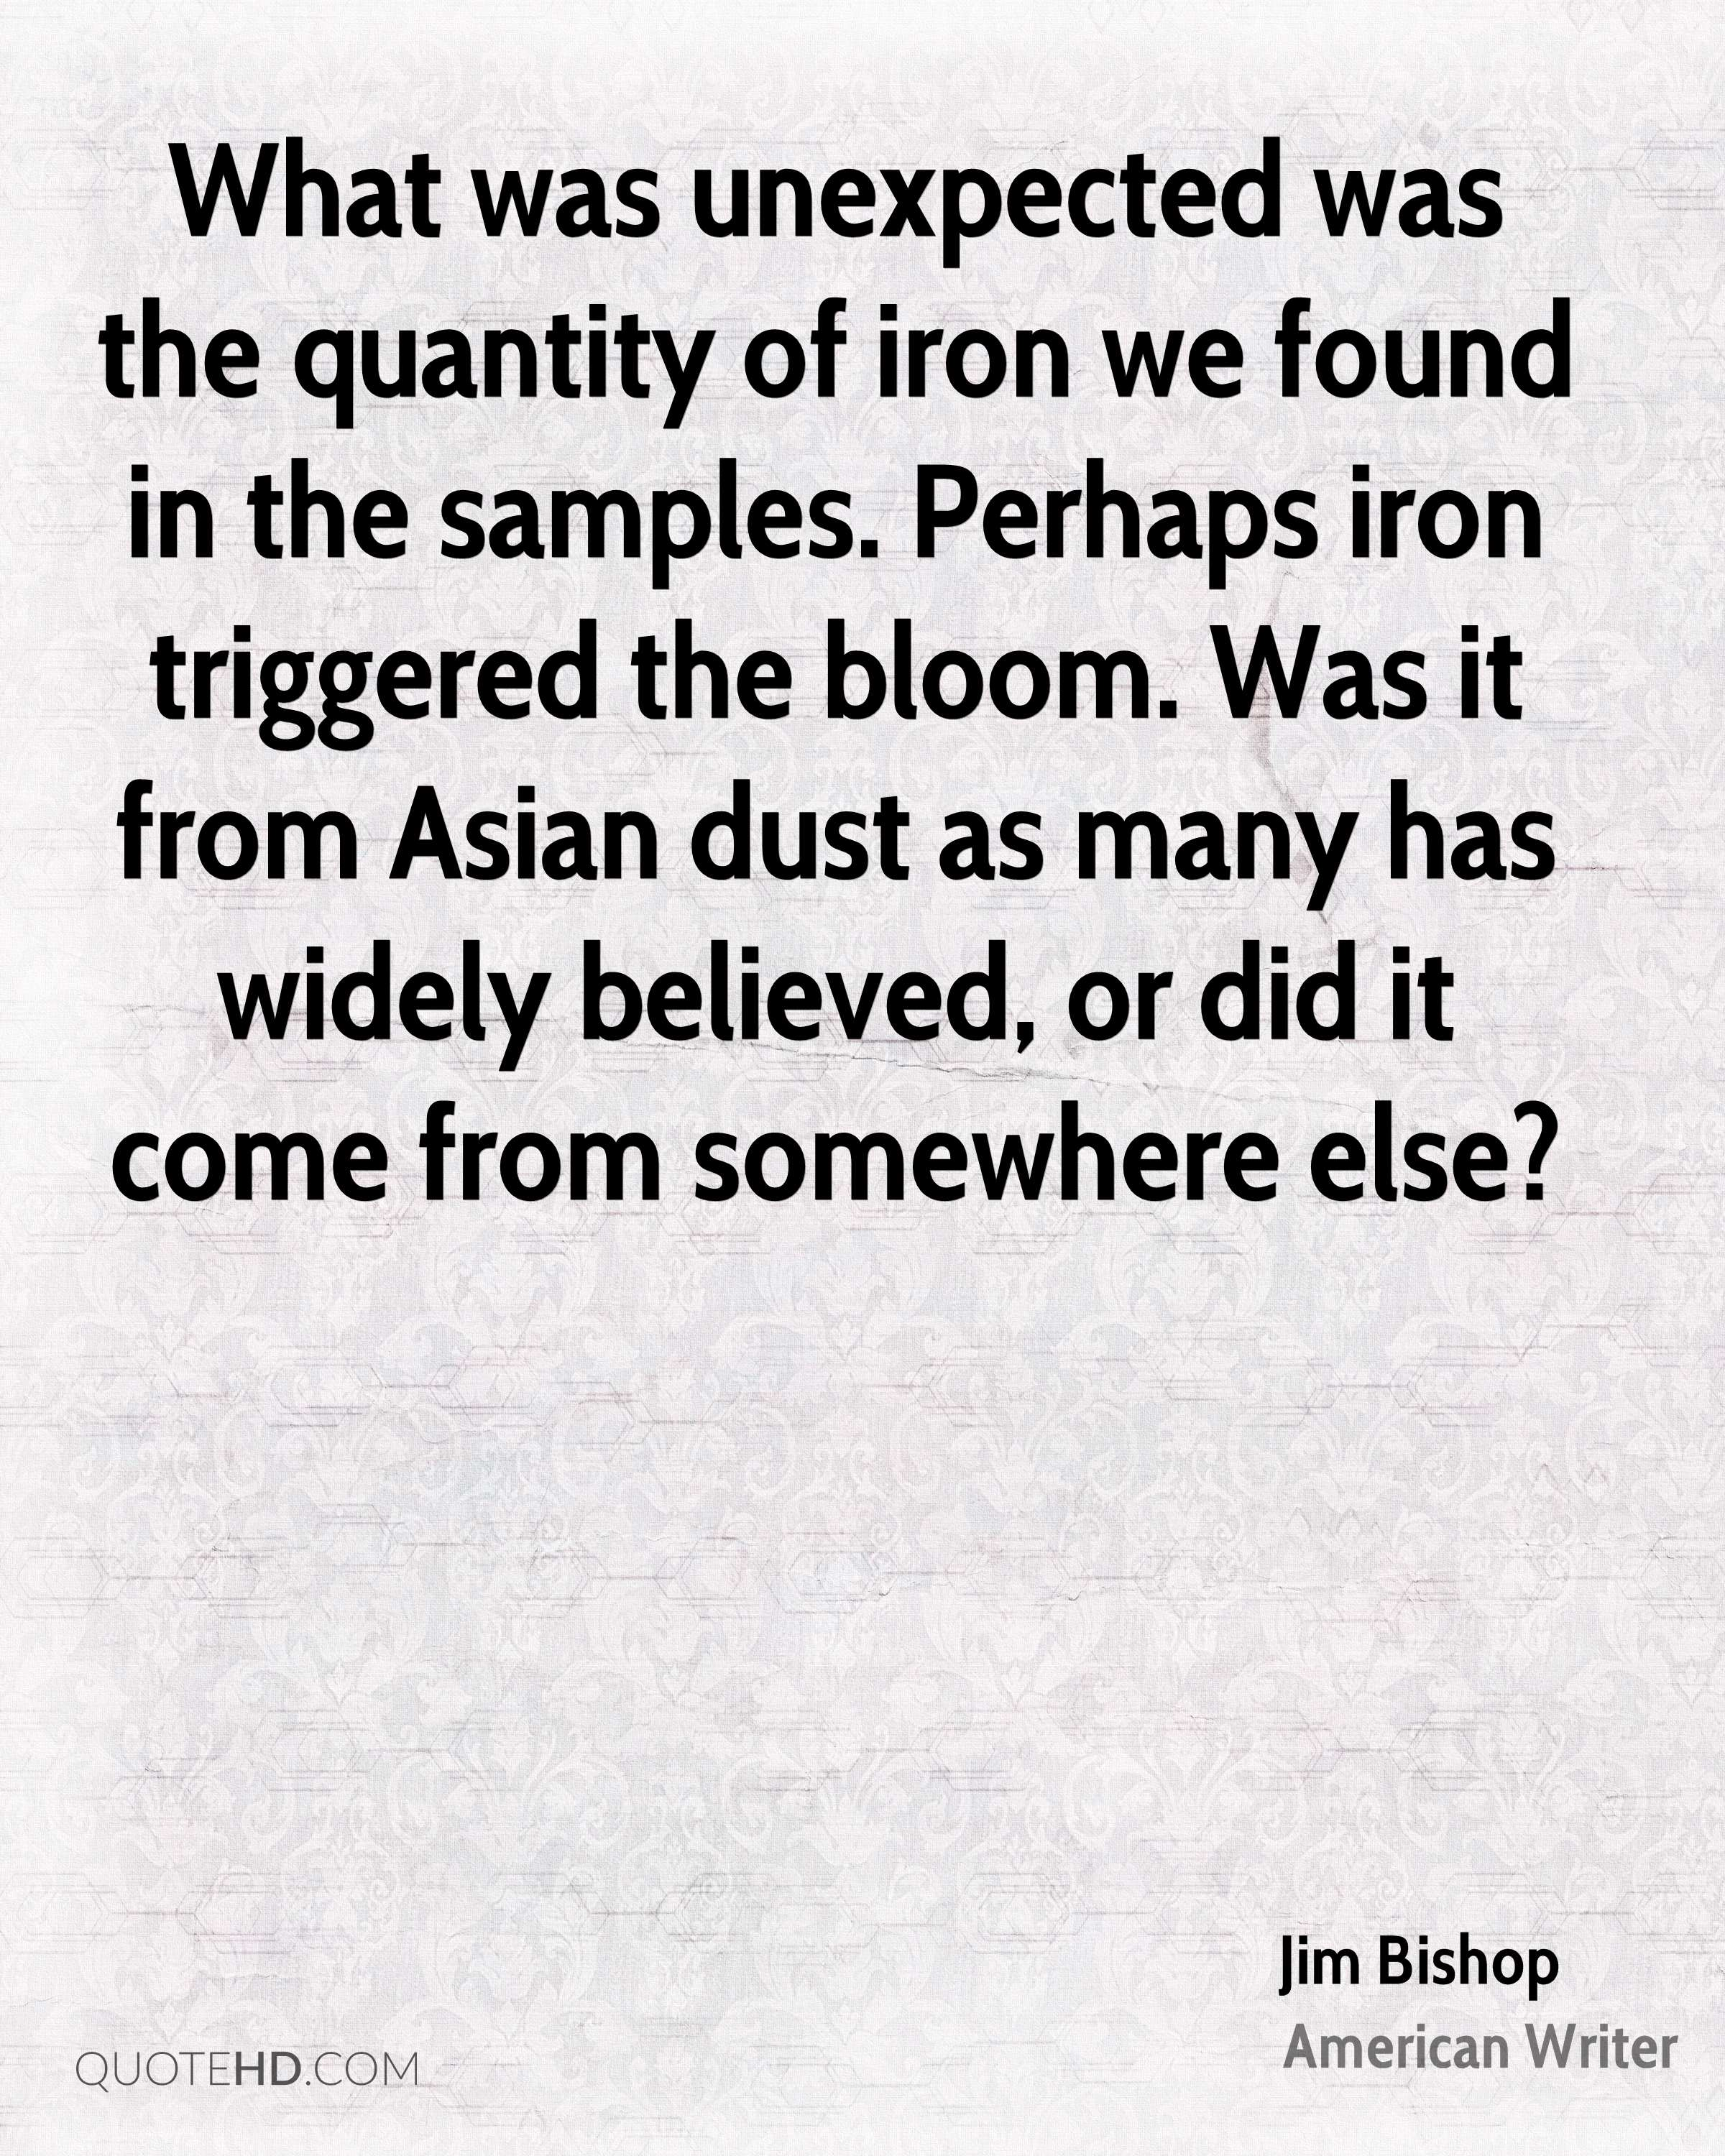 What was unexpected was the quantity of iron we found in the samples. Perhaps iron triggered the bloom. Was it from Asian dust as many has widely believed, or did it come from somewhere else?